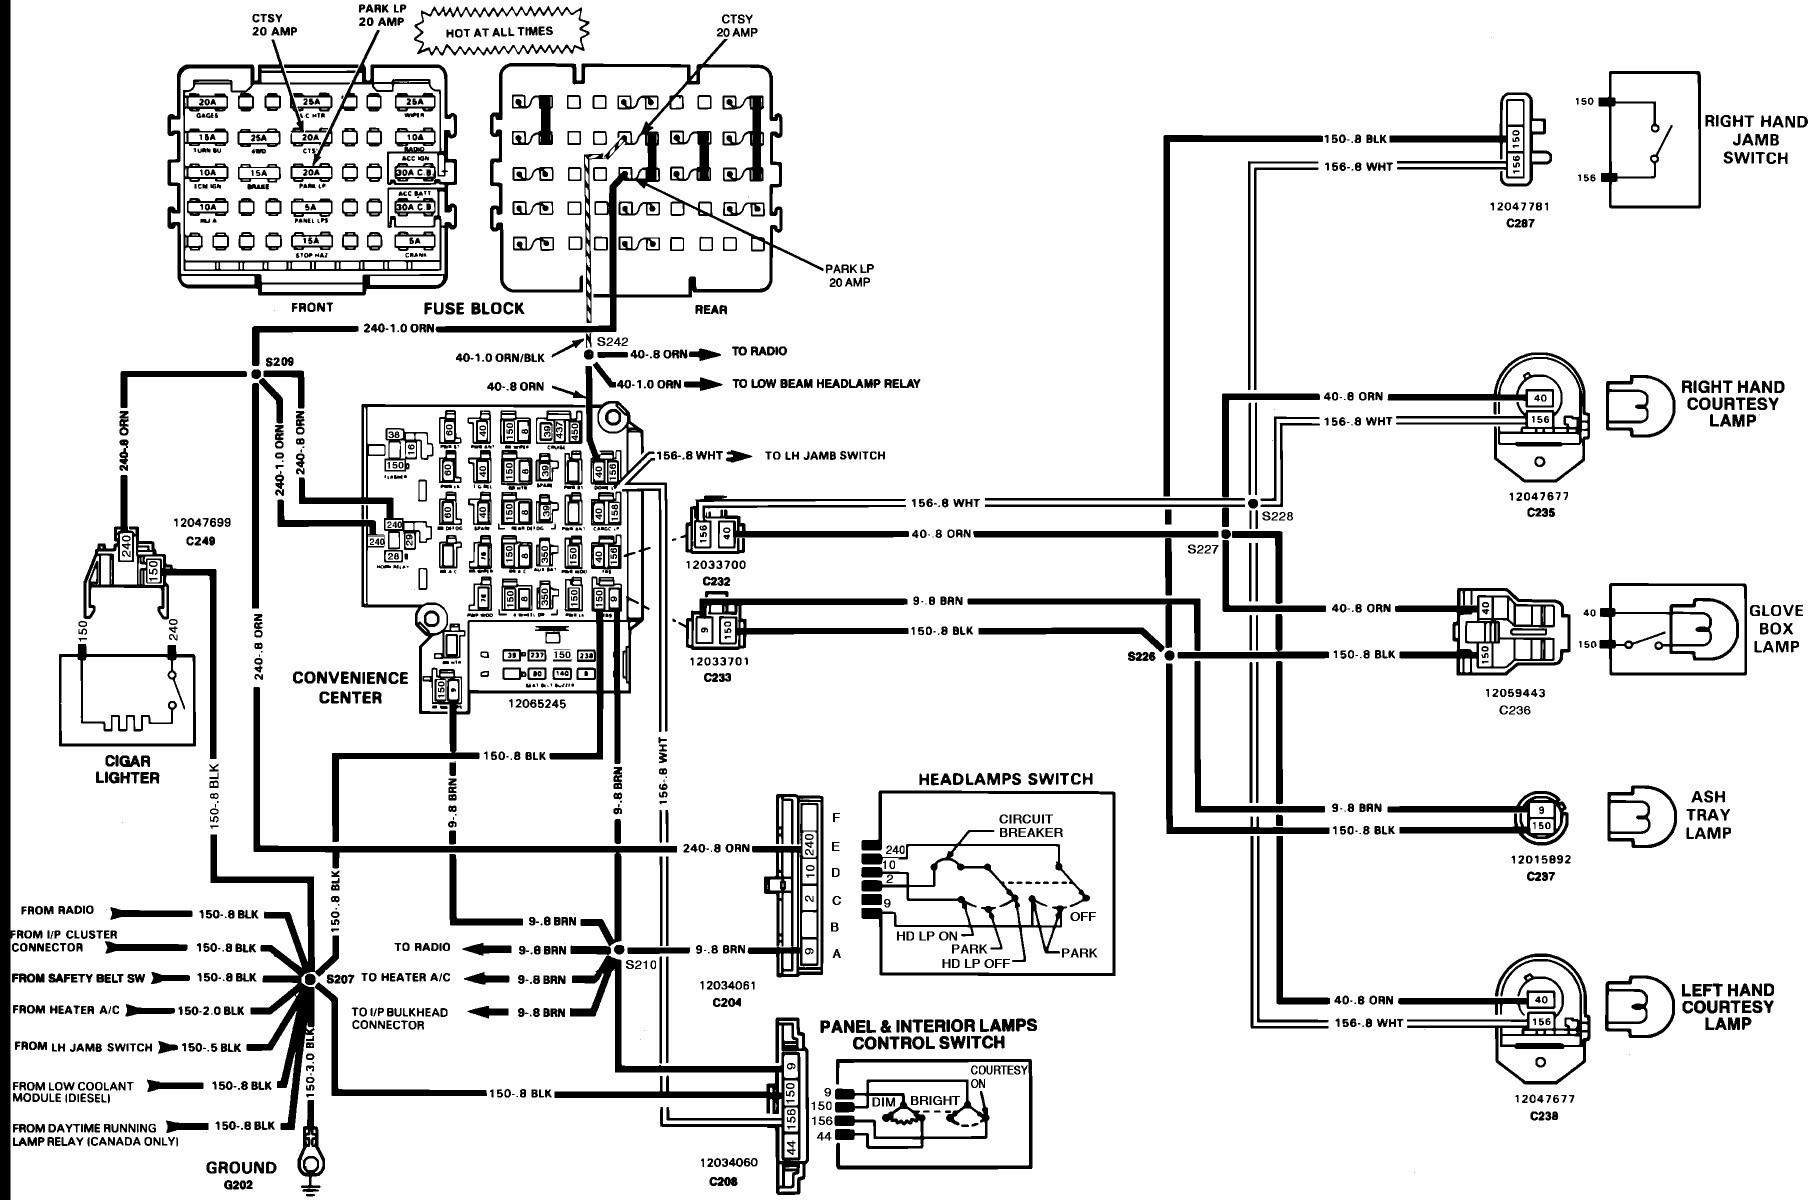 three way switch wiring diagram hampton bay wiring library88 98 chevy radio wiring diagram \u2022 wiring diagram for free